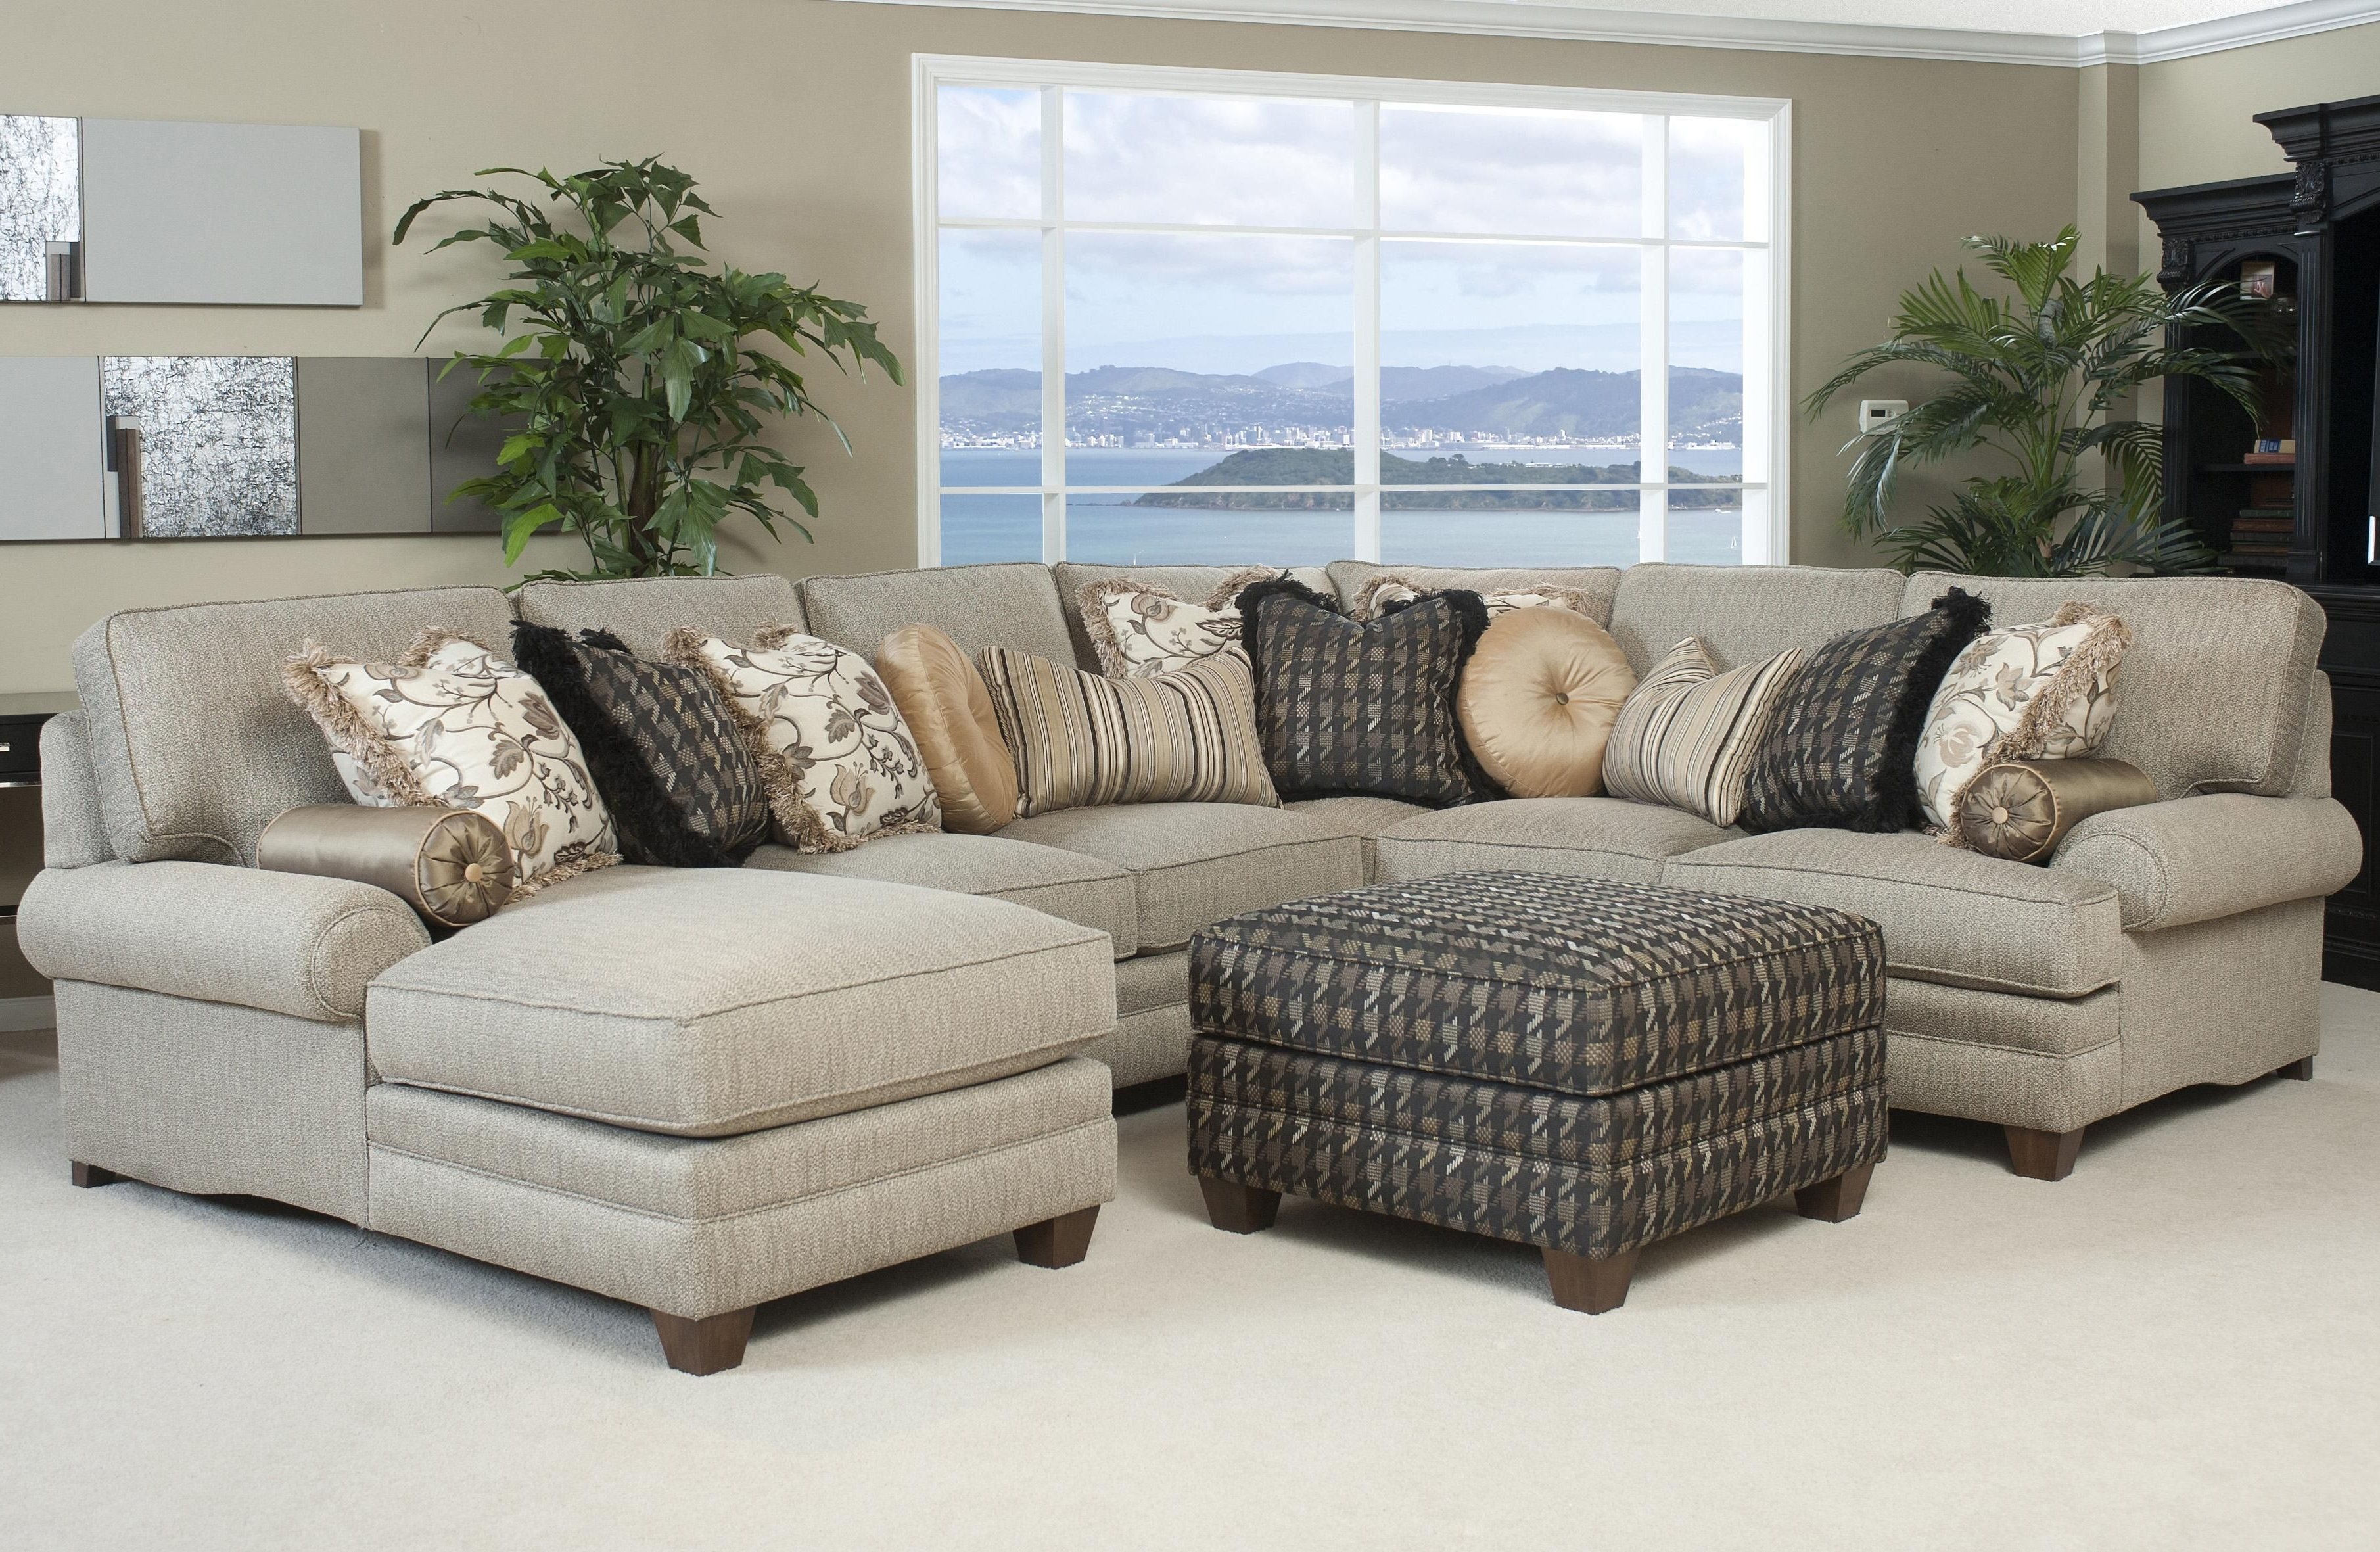 Jacksonville Fl Sectional Sofas With Regard To Most Recent Most Comfortable Sofa Http://www.sofaideas.co/most Comfortable (Gallery 10 of 20)